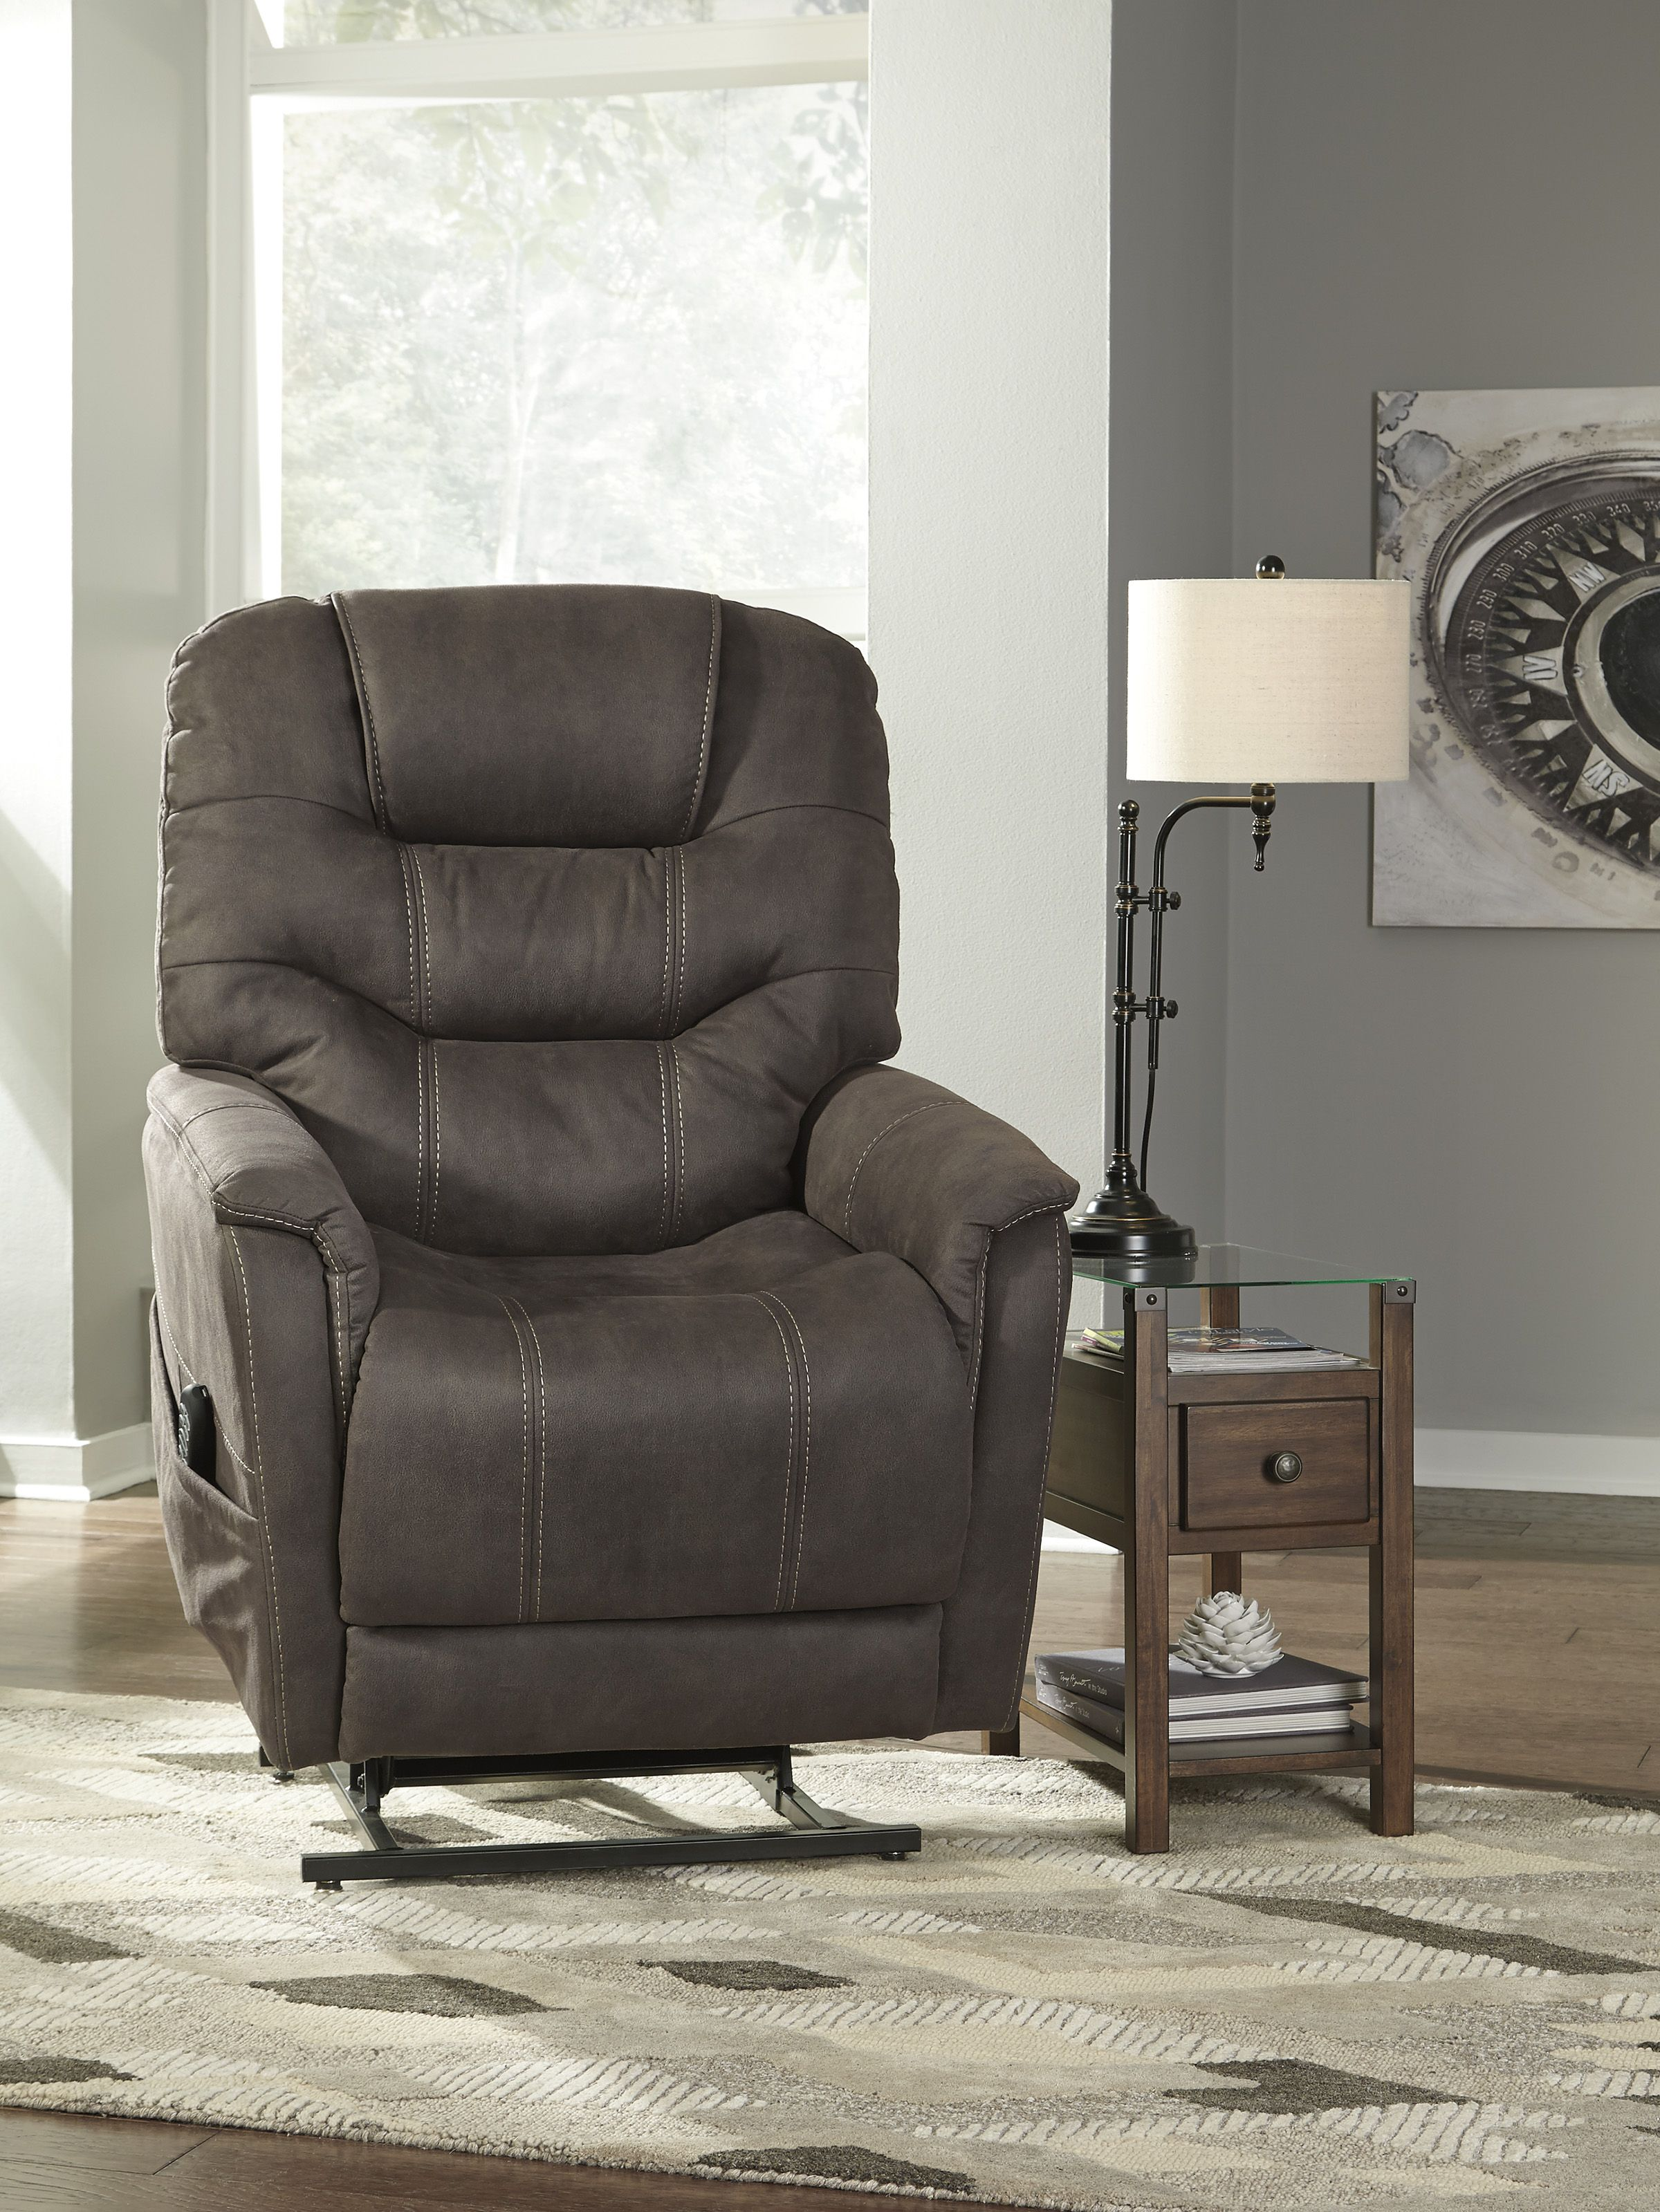 Take Charge Of Your Seating With This Power Lift Recliner Its